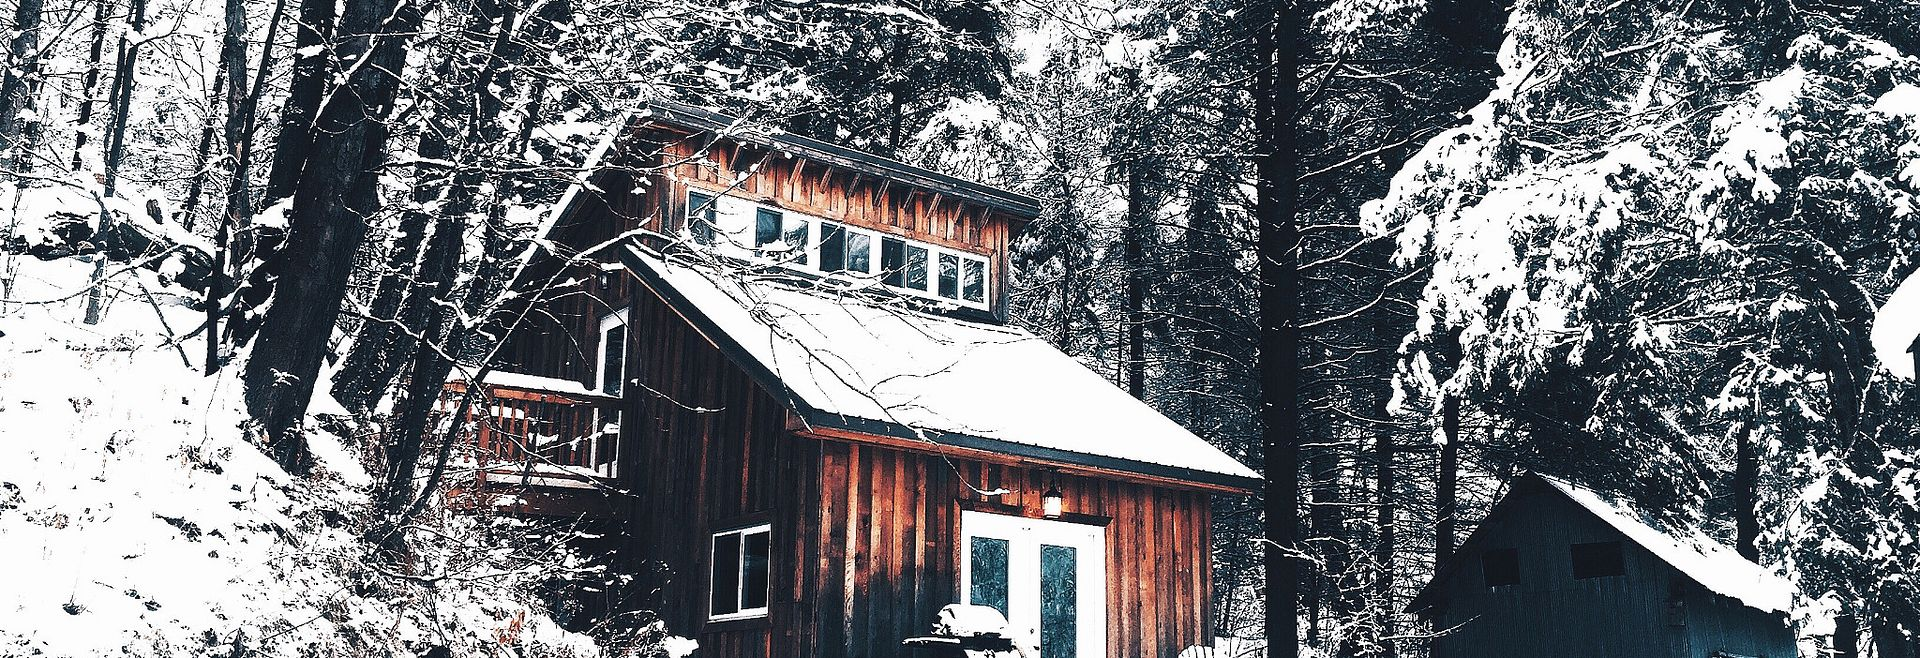 Home covered in snow among trees topped with snow